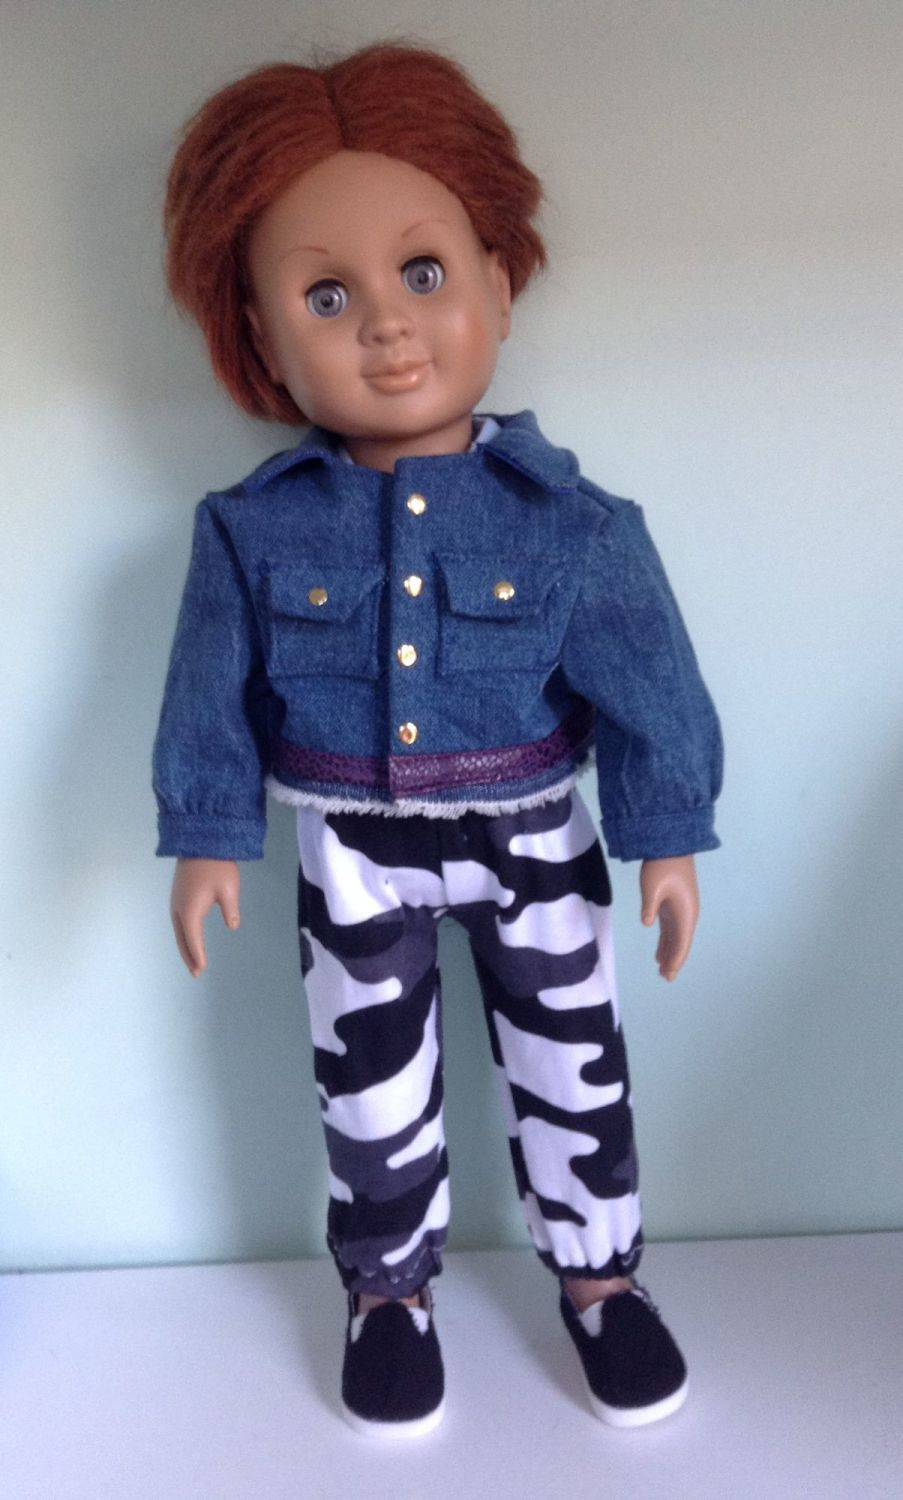 Doll's denim jacket to fit  18 inch boy doll such as Our Generation